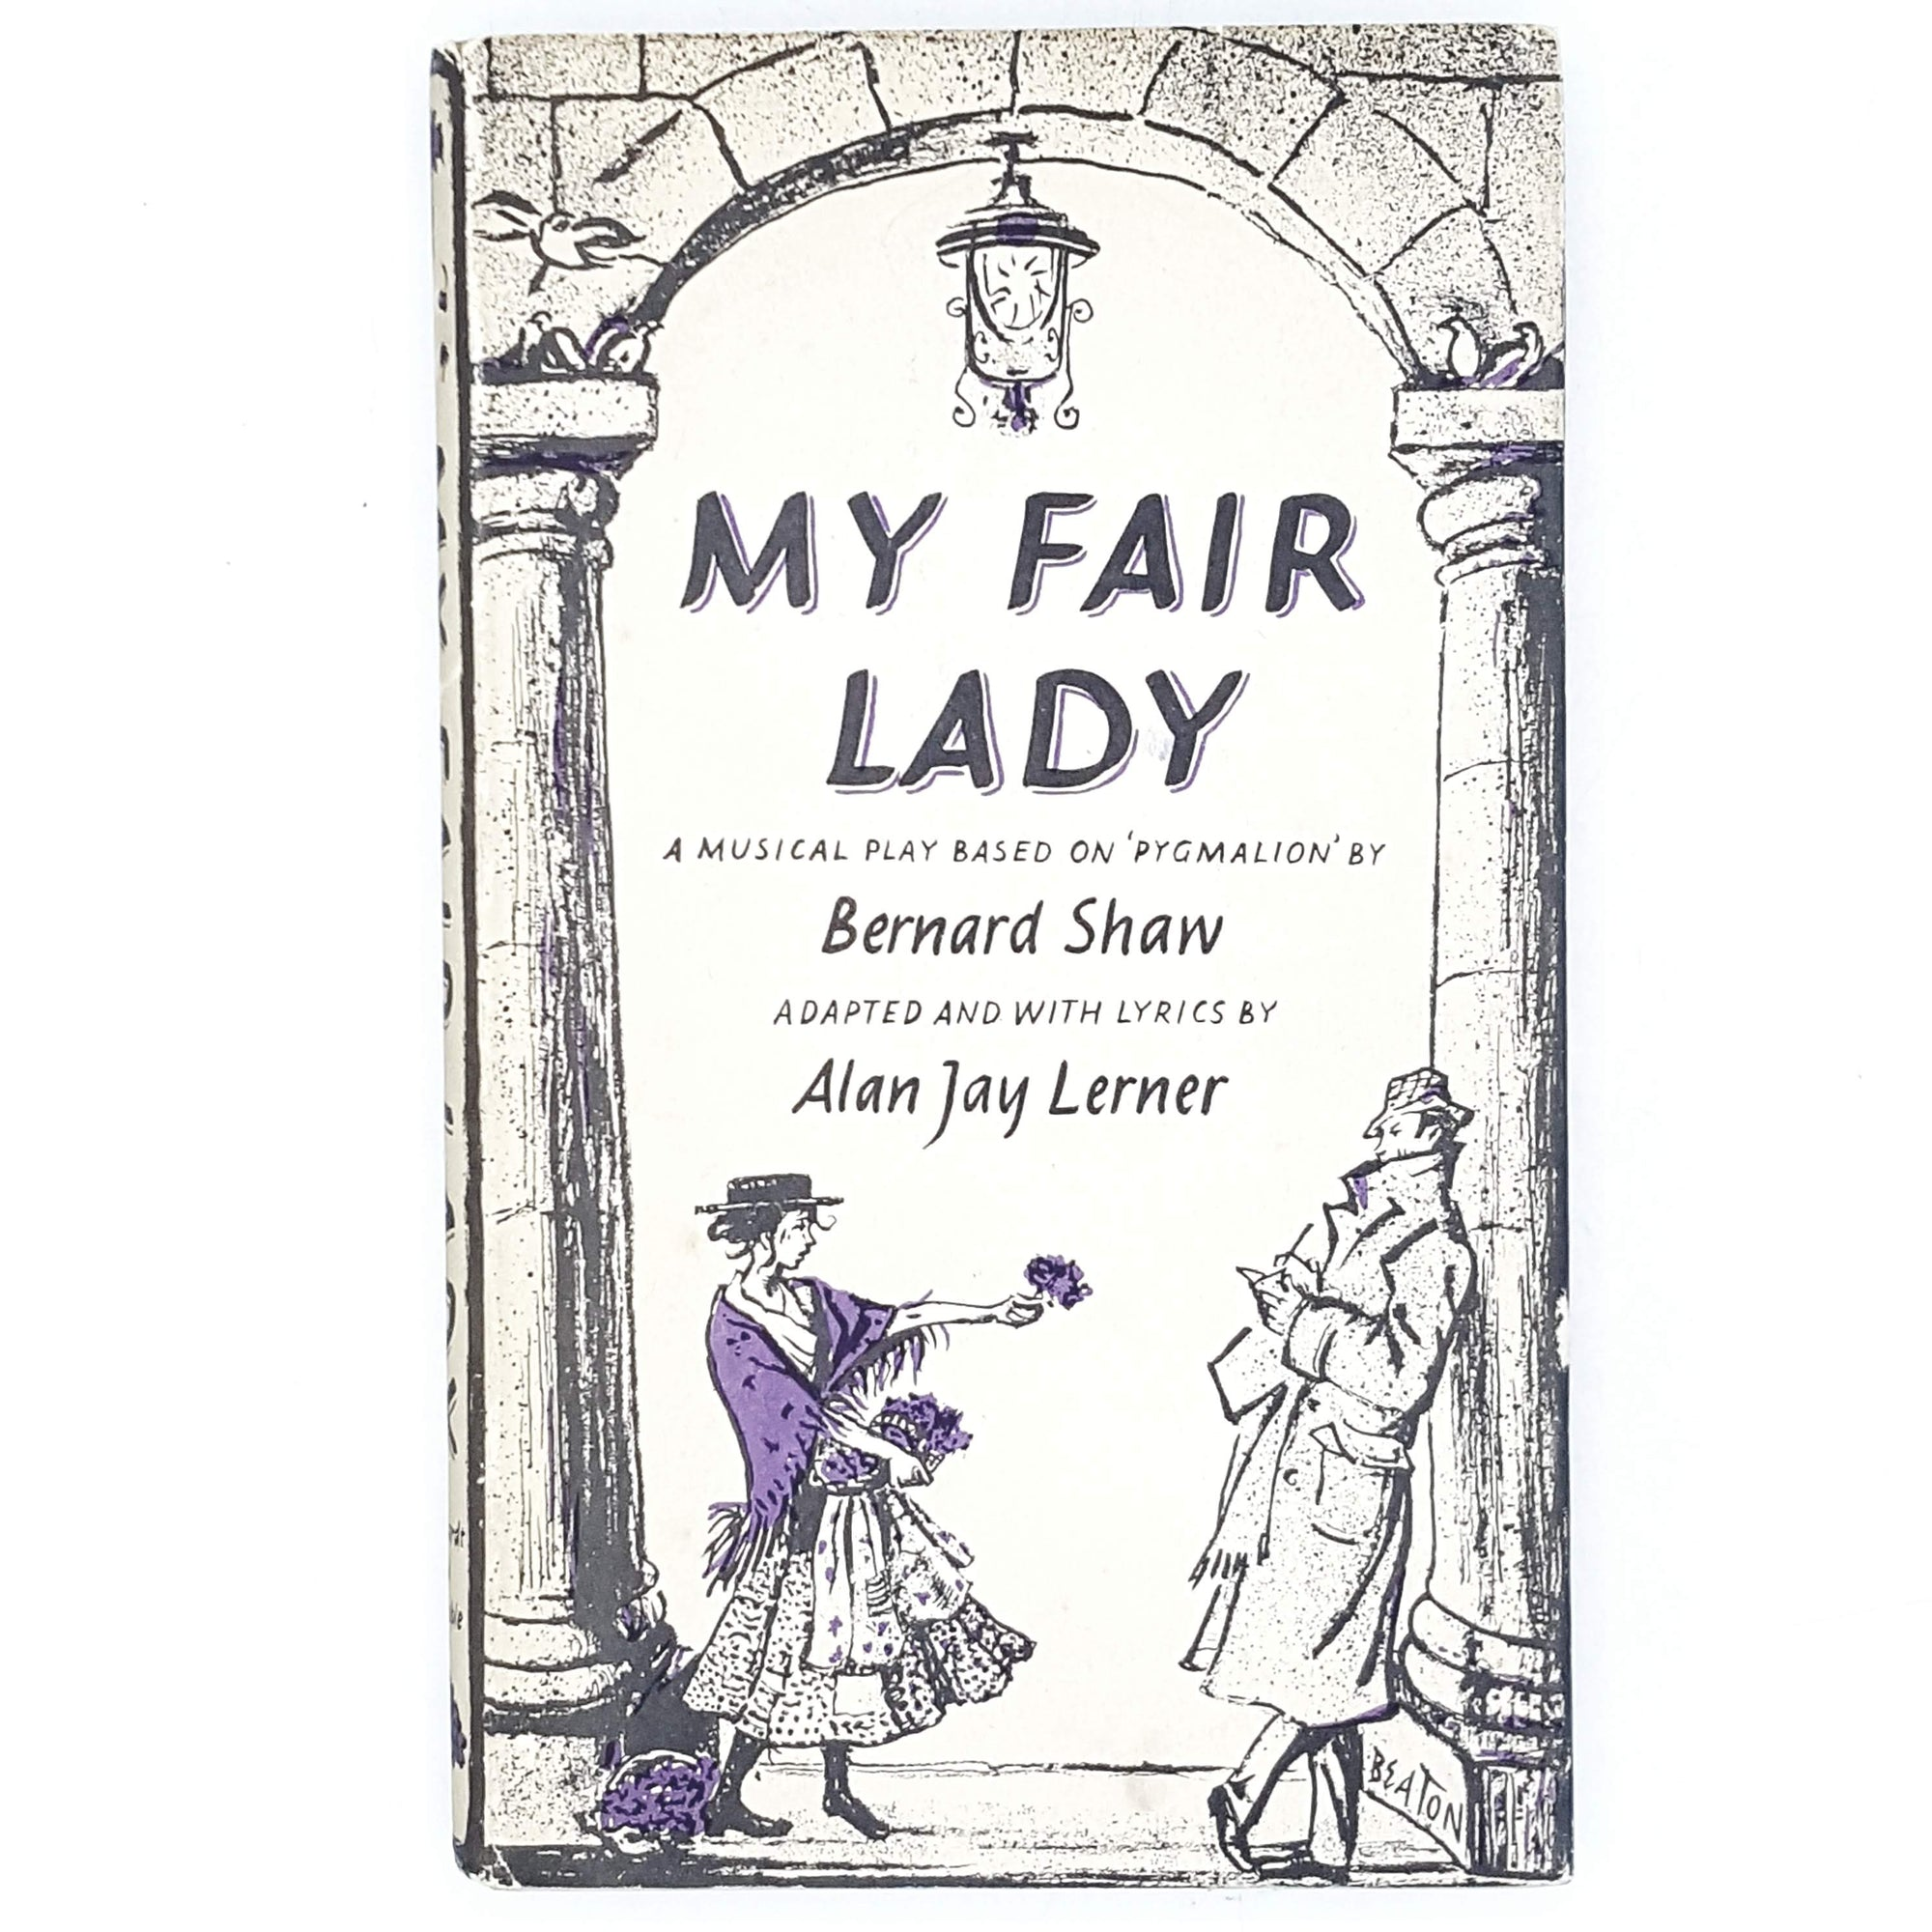 Bernard Shaw's My Fair Lady 1958